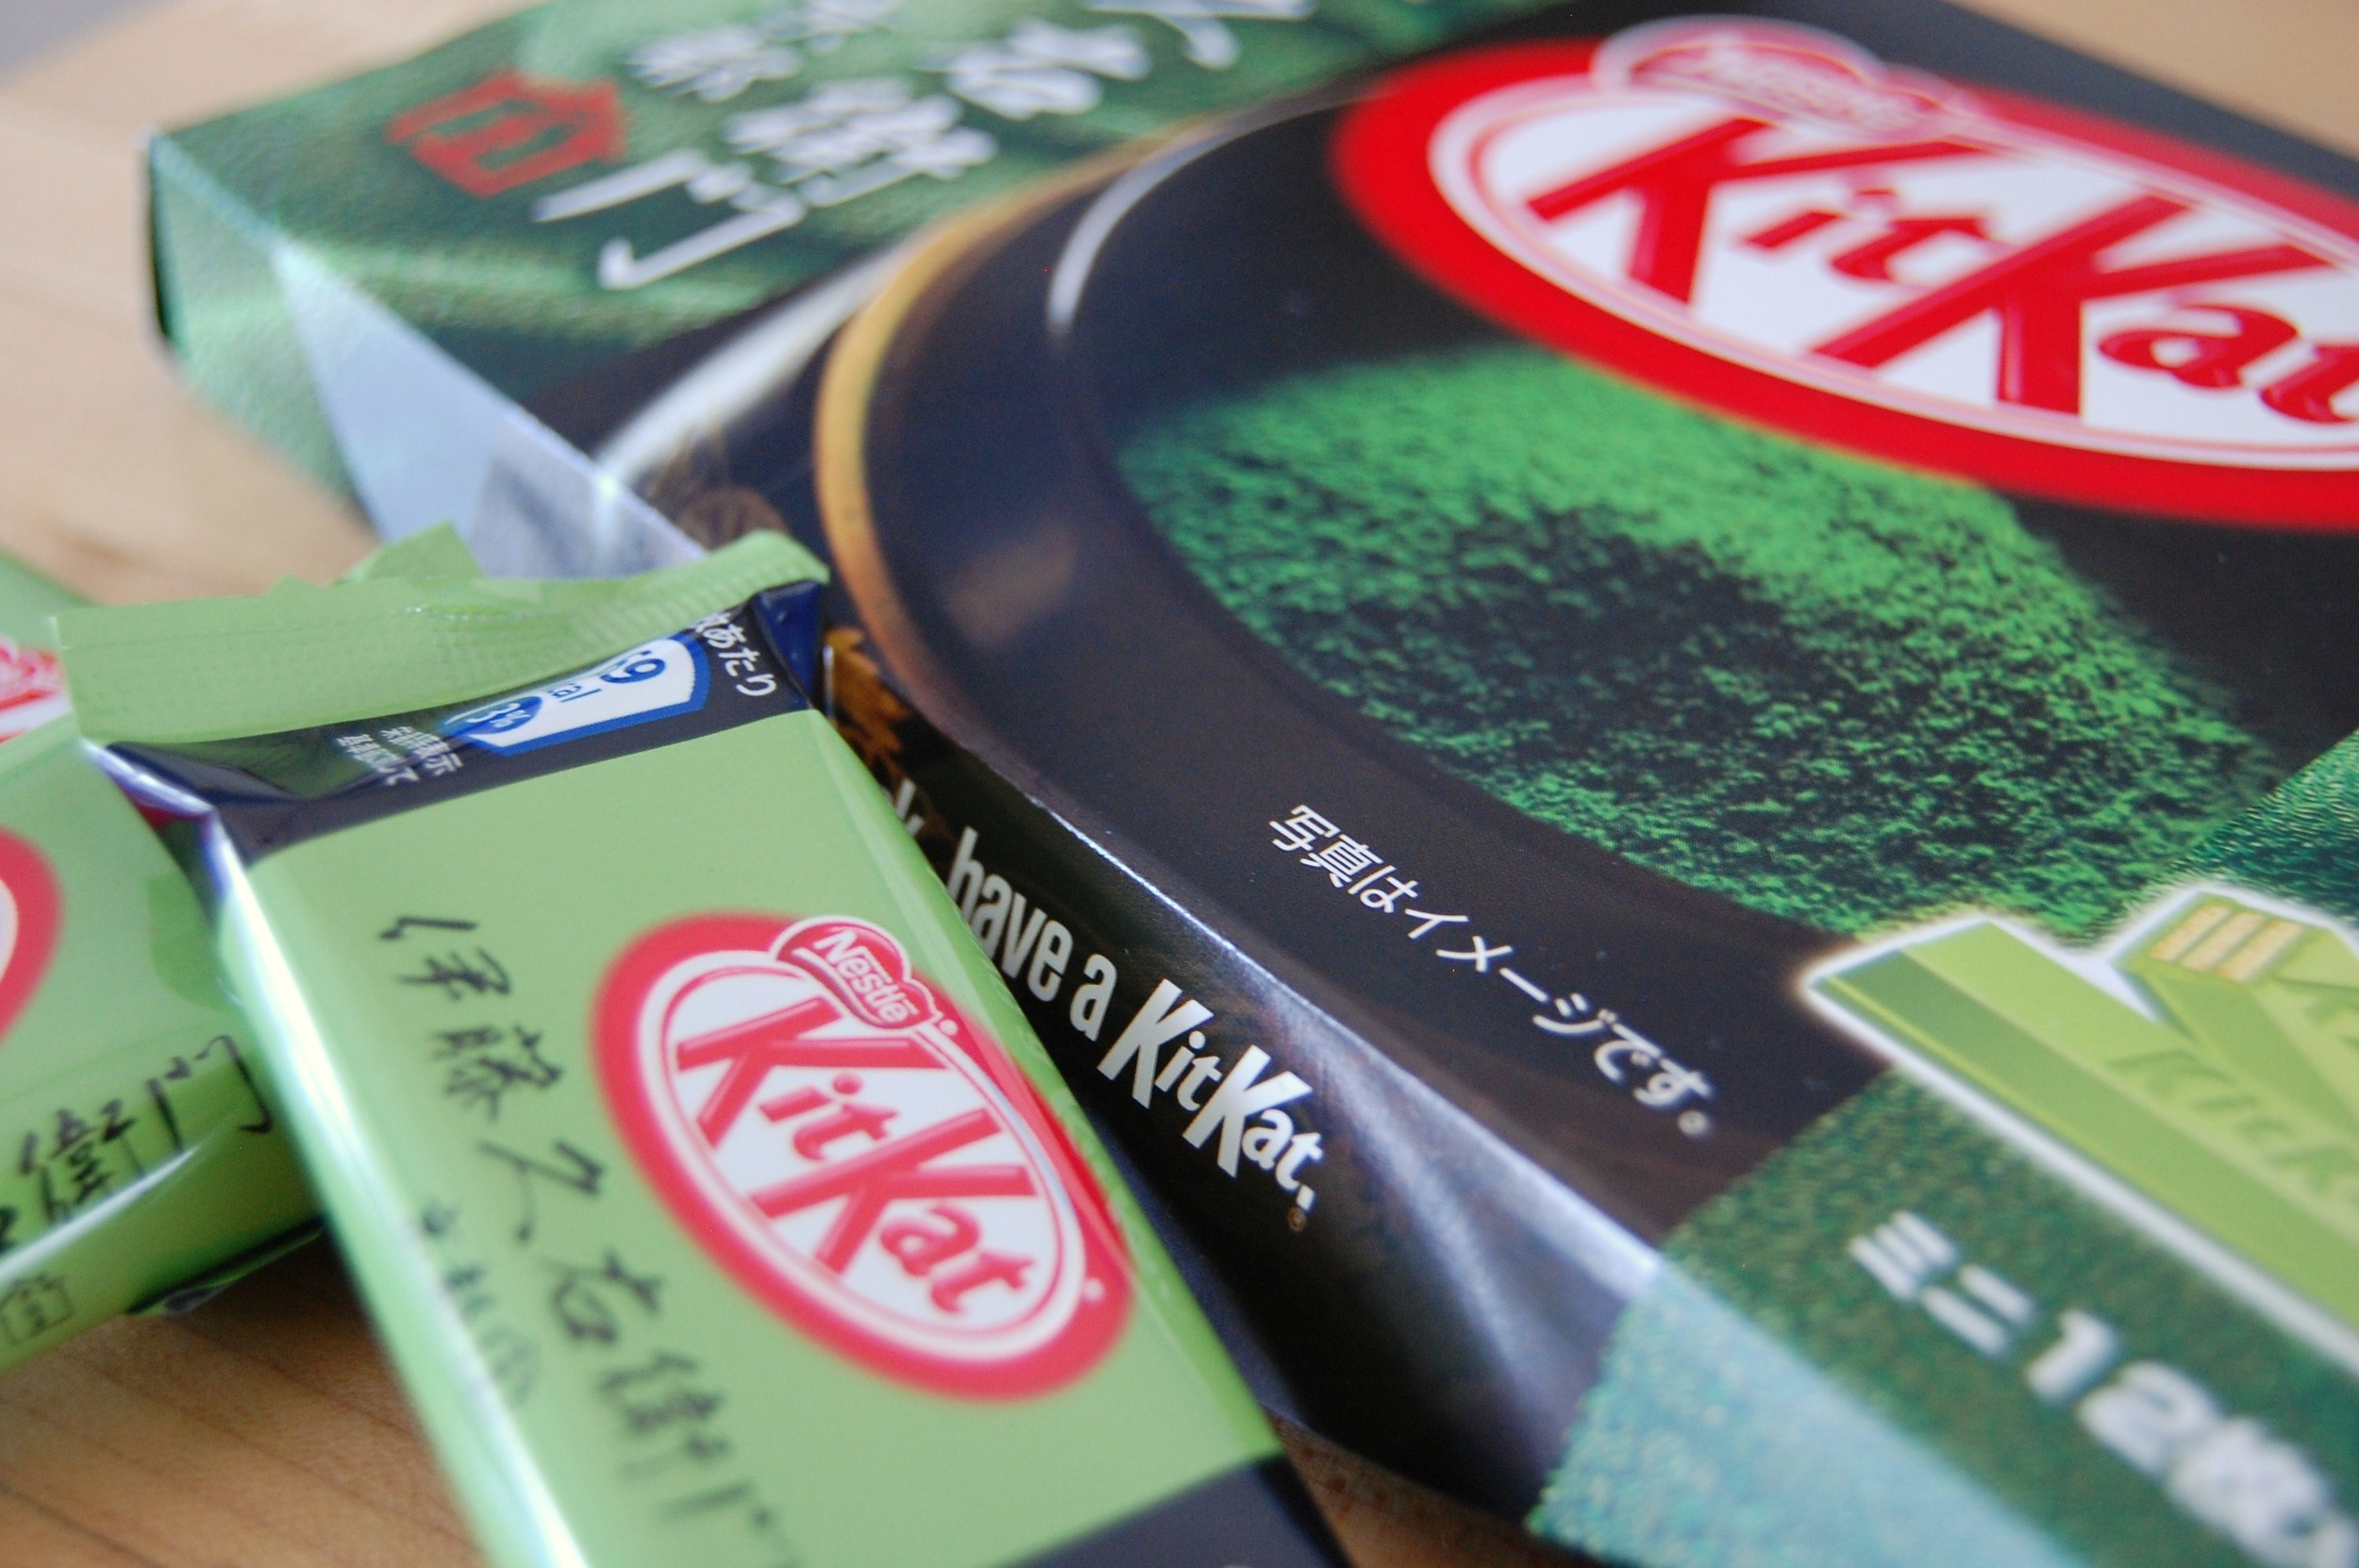 """""""When you say green tea, does that include my green tea Kit Kats?""""   jpellgen/Flickr  (CC BY-NC-ND 2.0)"""